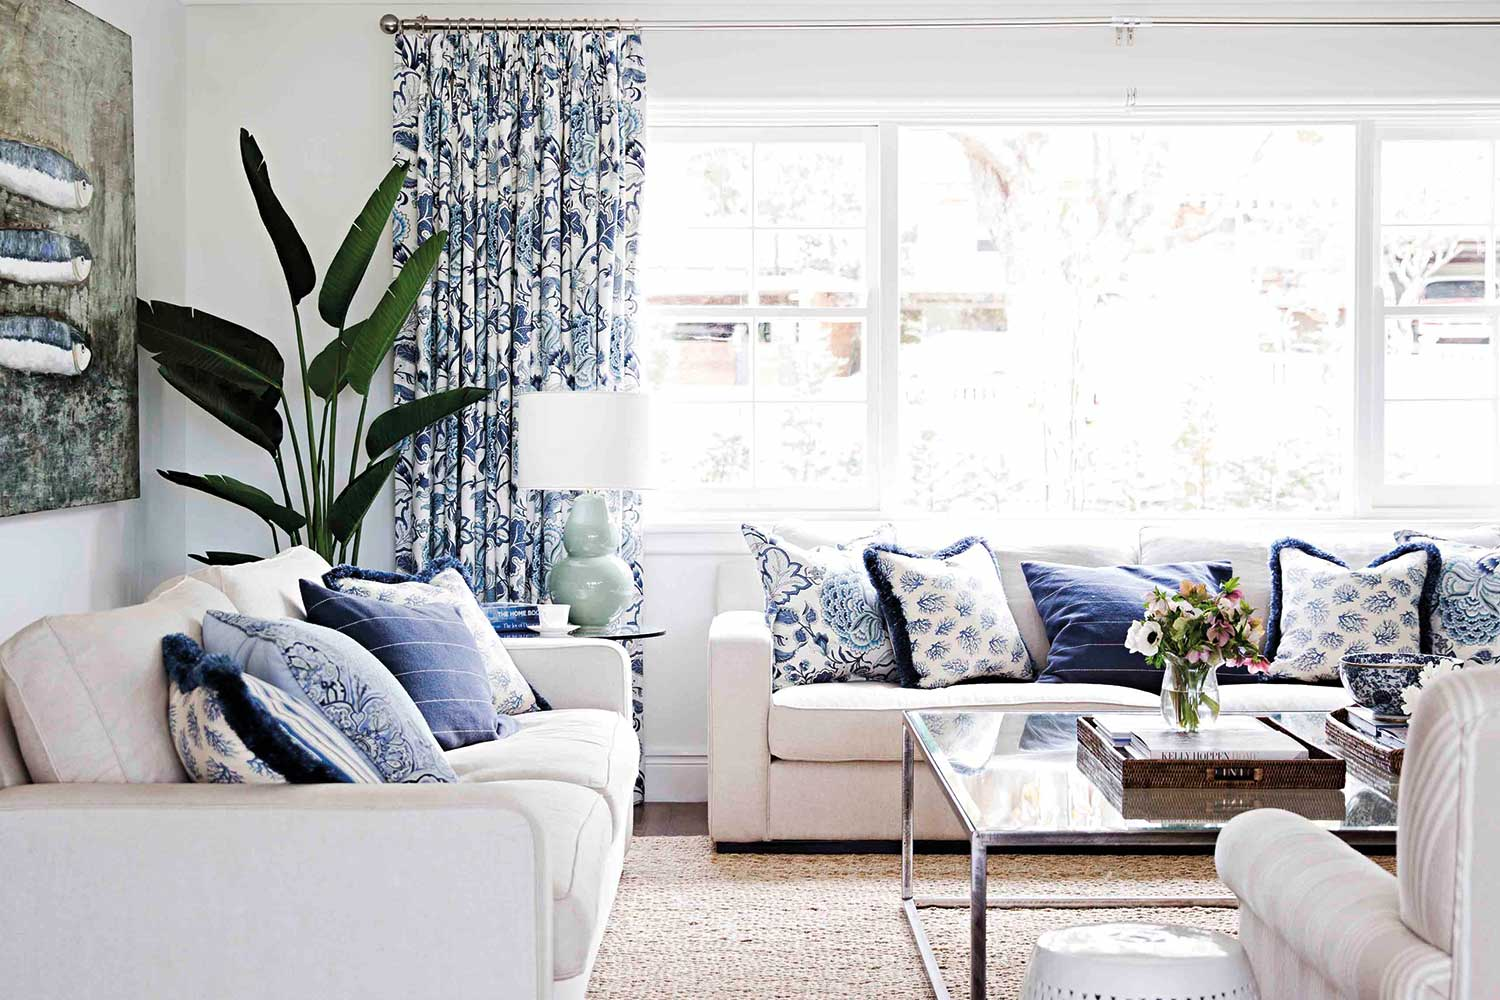 10 Easy Ways To Decorate Your Home With Hamptons Style